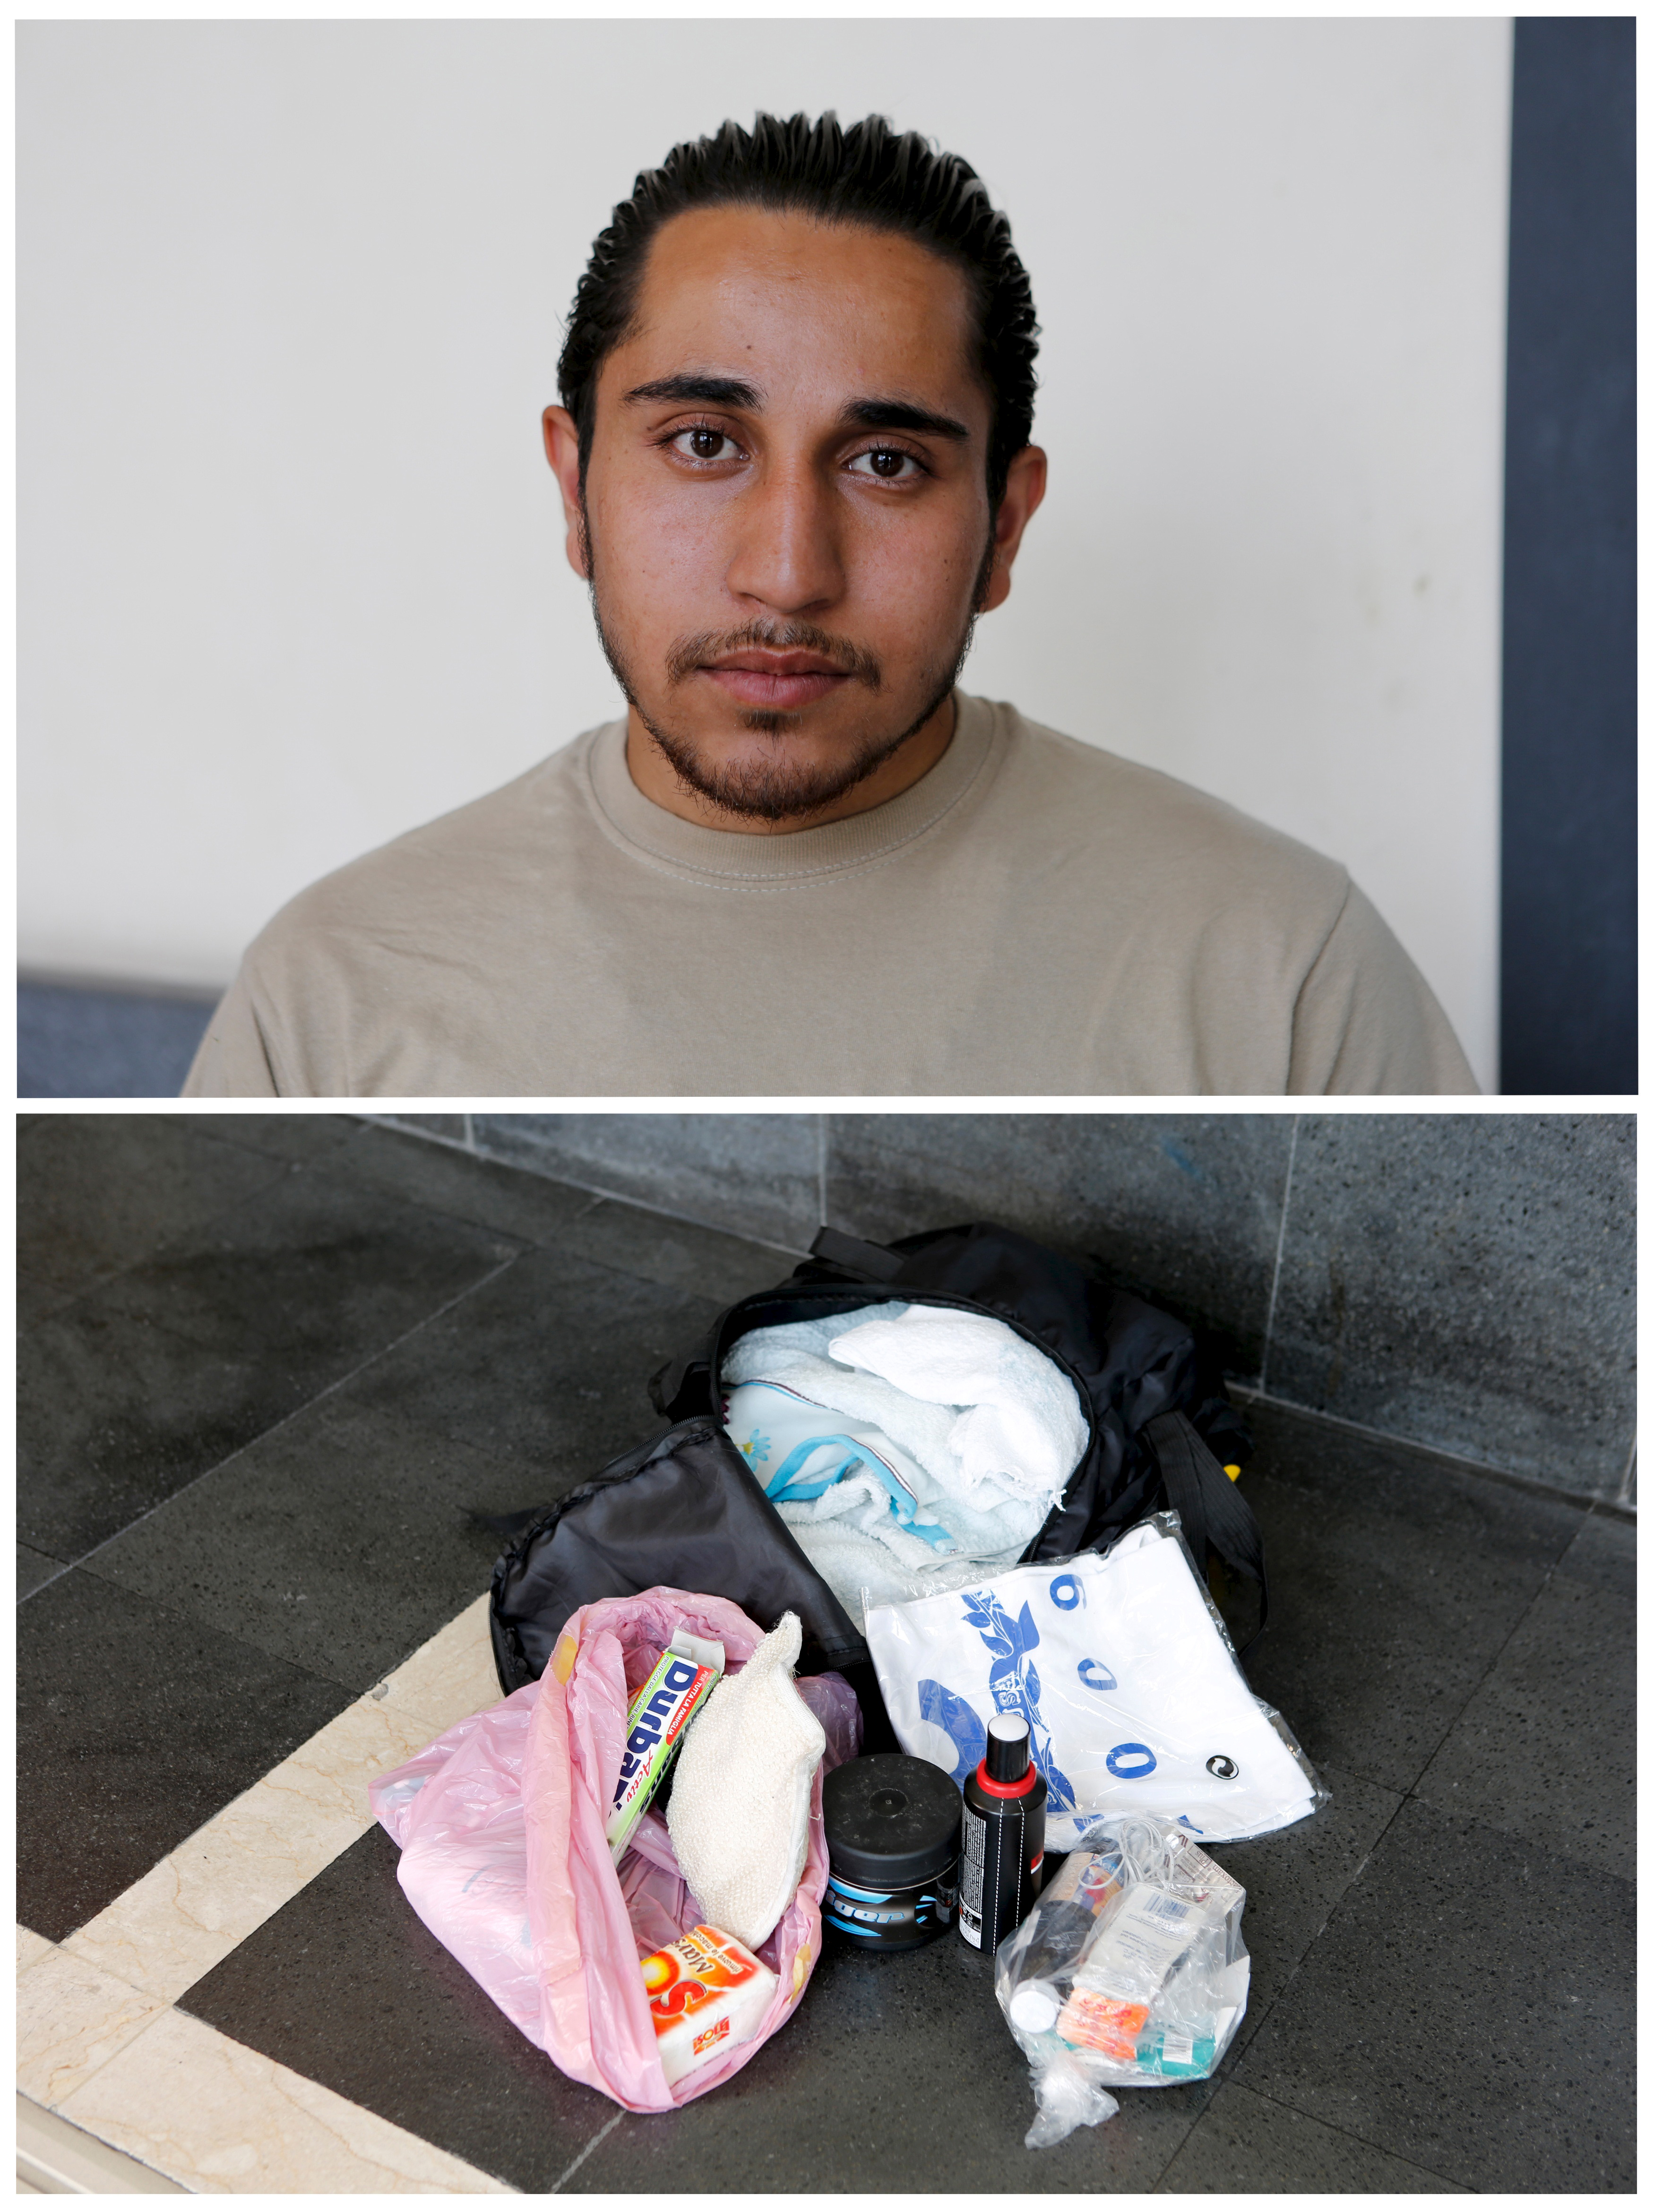 Syrian migrant Feras, 22, and his possessions. He aims to be a computer technician in Germany. Photo by Antonio Parrinello/Reuters